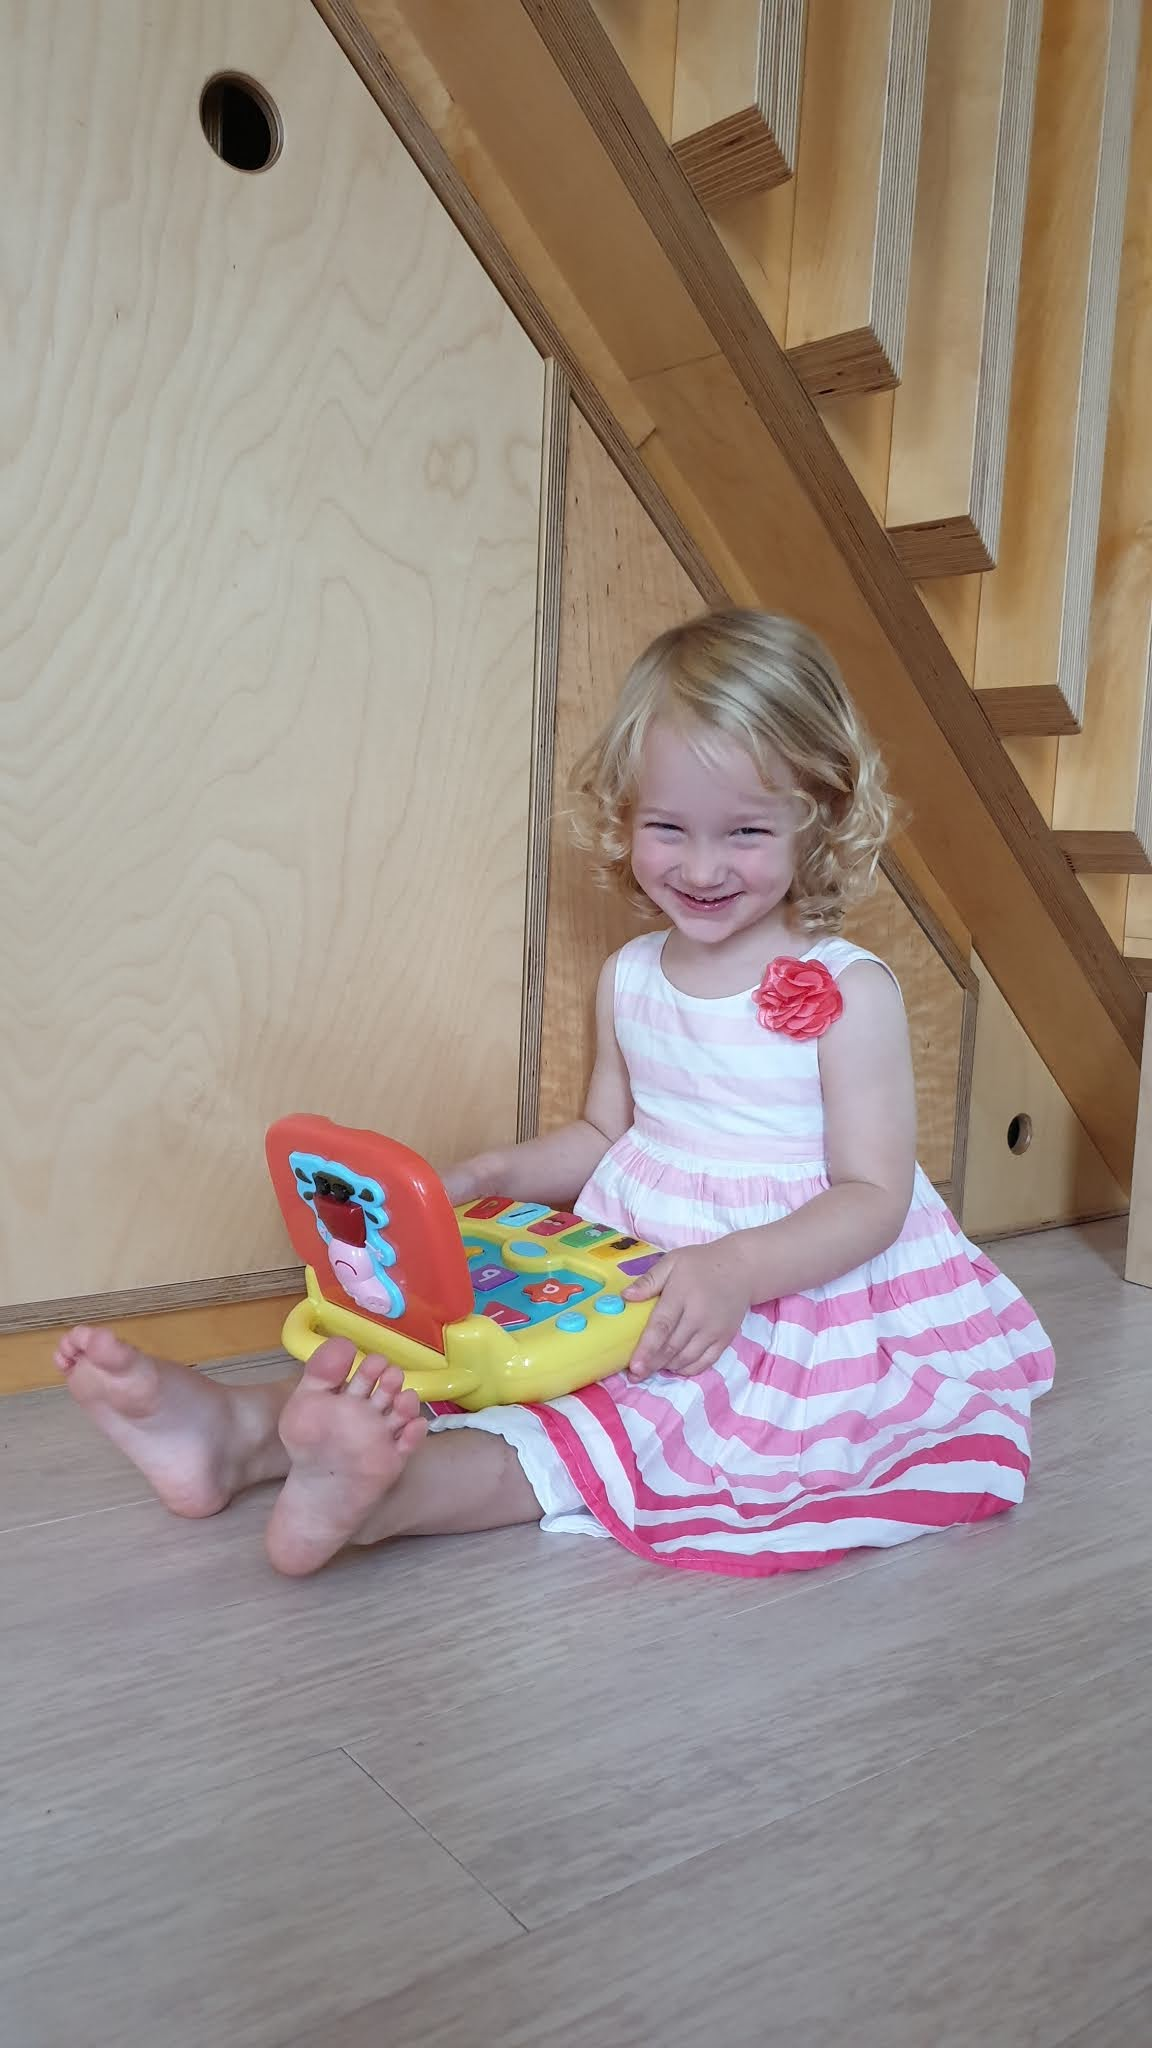 toddler smiling with a peppa pig laptop